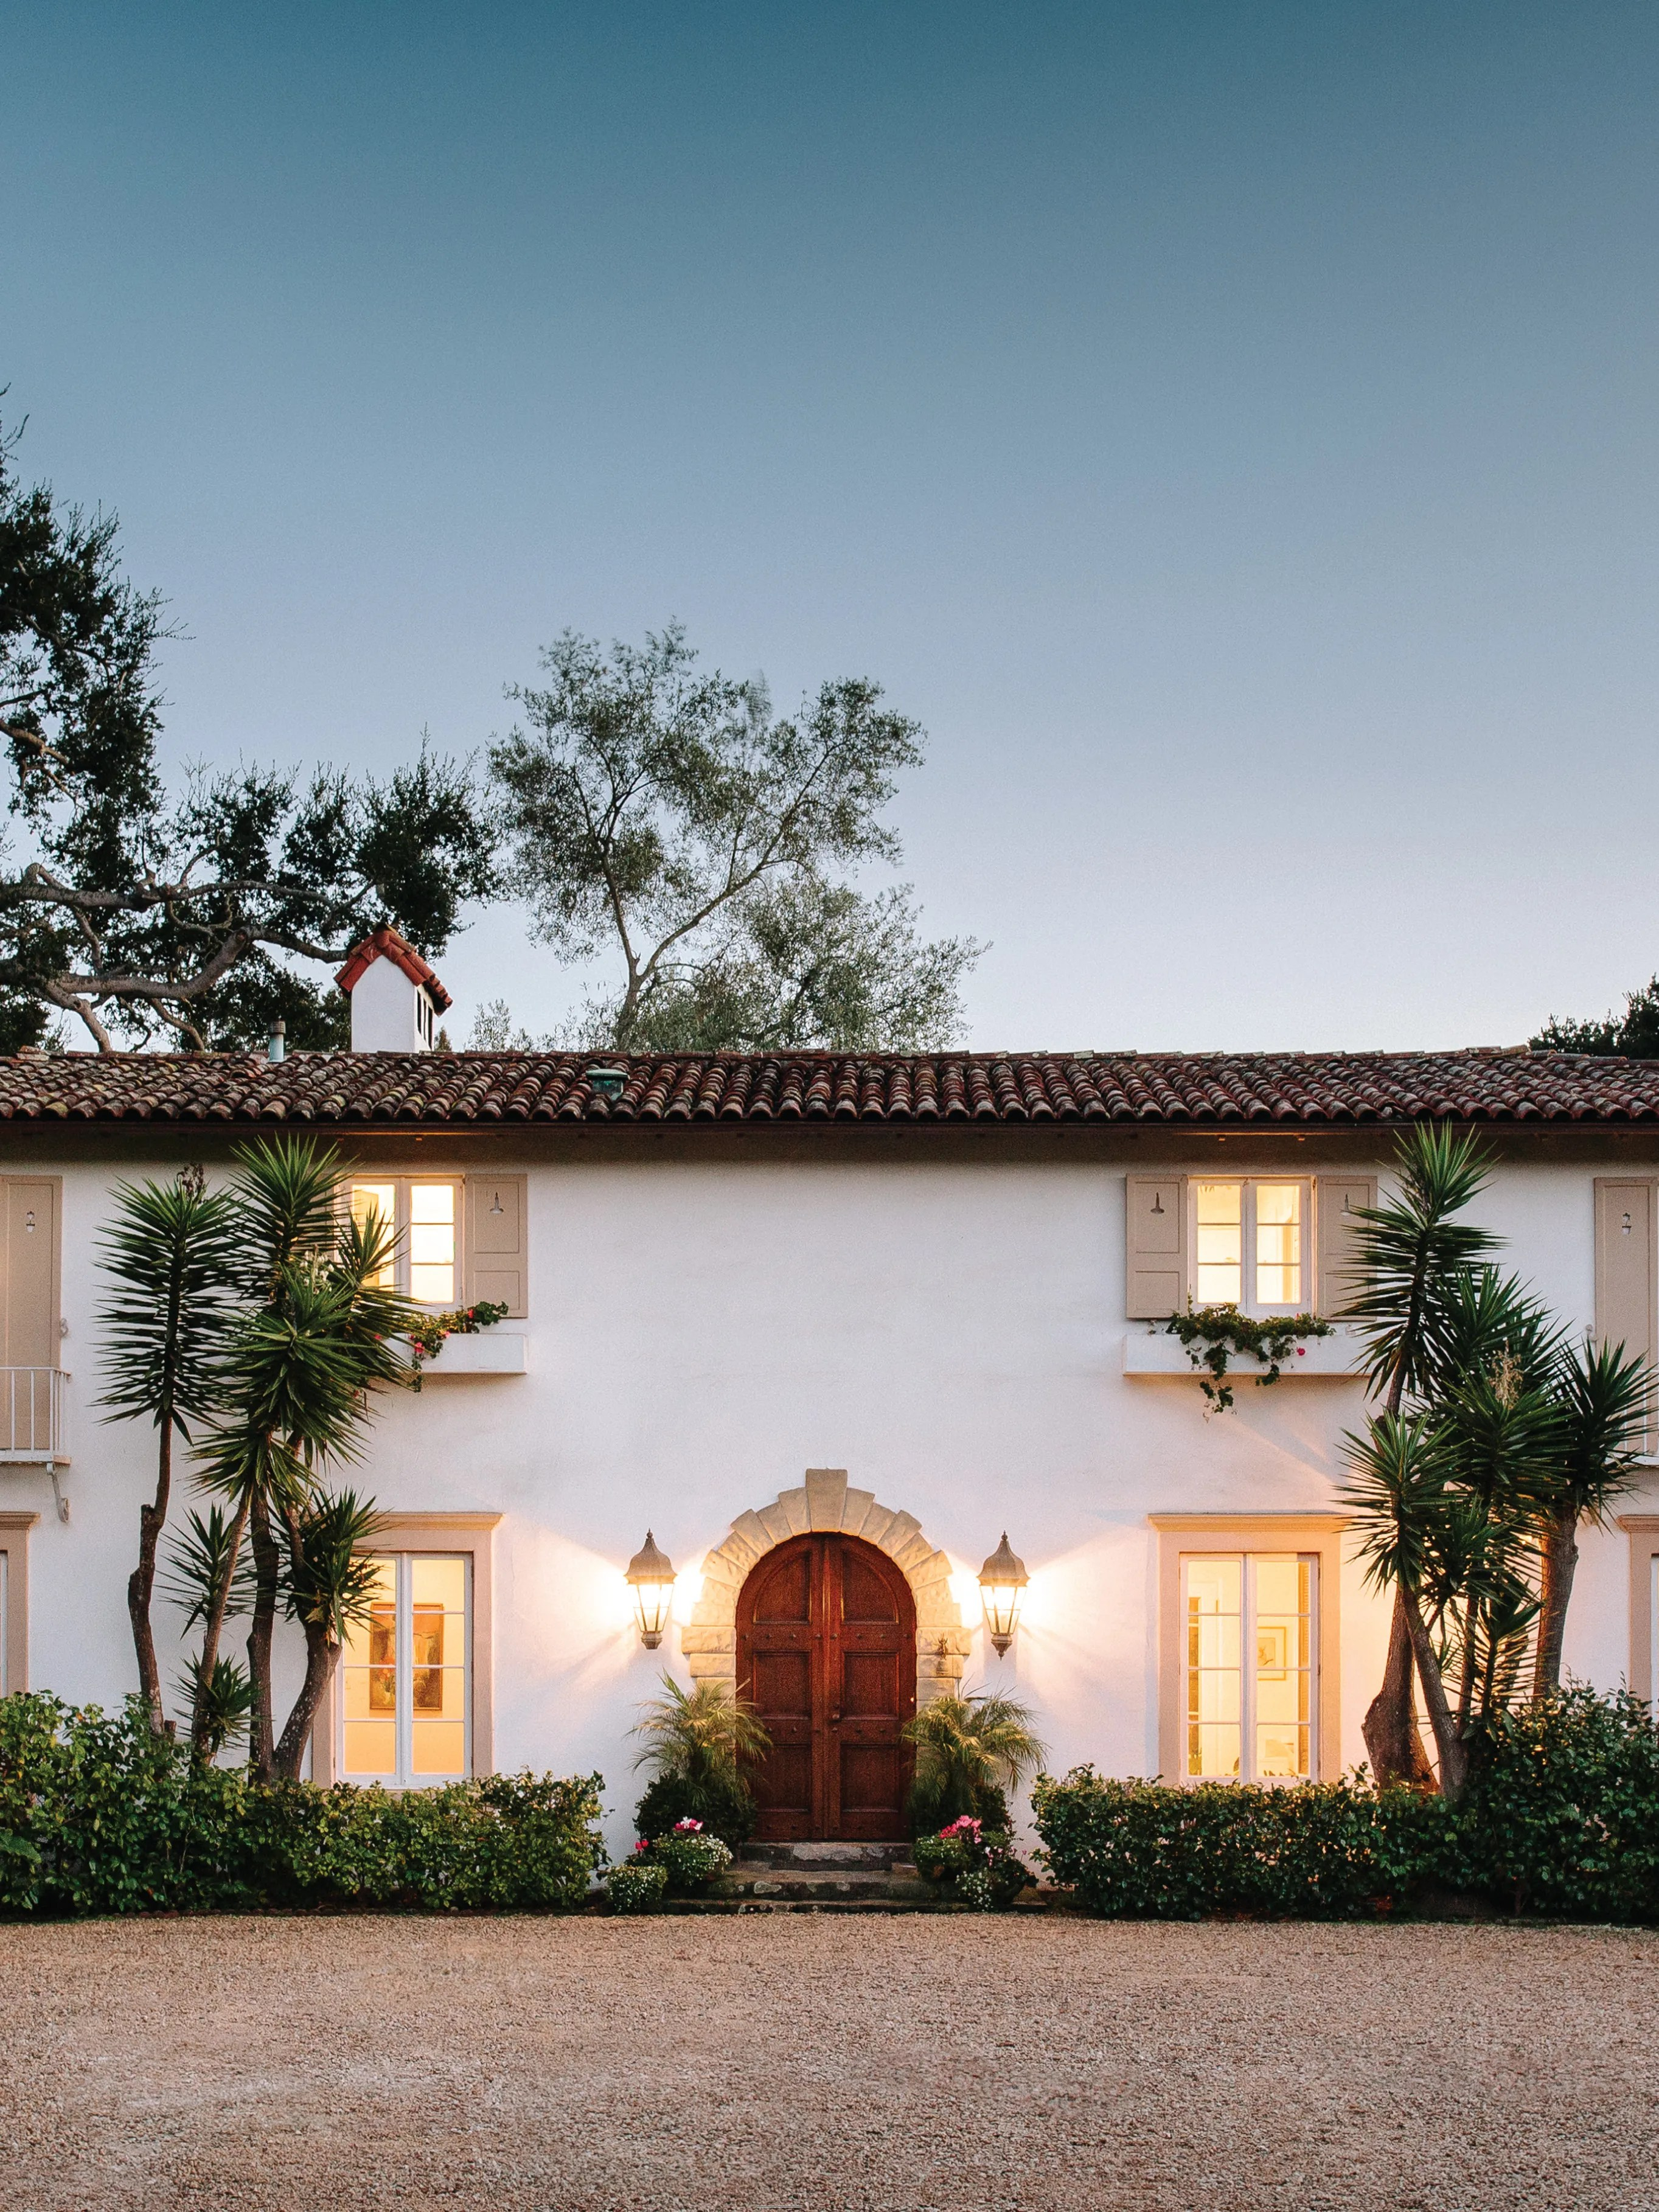 Spanish Mission Style House : spanish, mission, style, house, Spanish, Colonial, Style, Santa, Barbara, Architectural, Digest